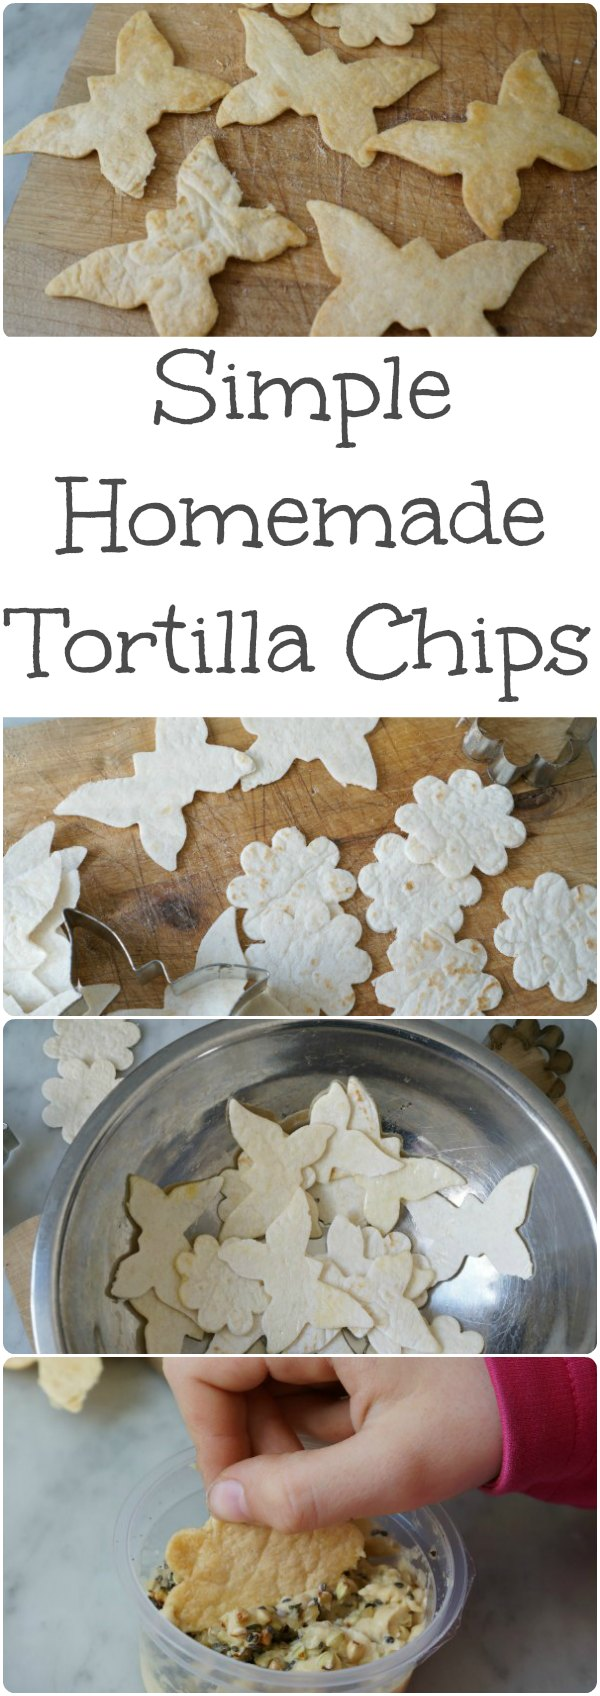 simple homemade tortilla chips